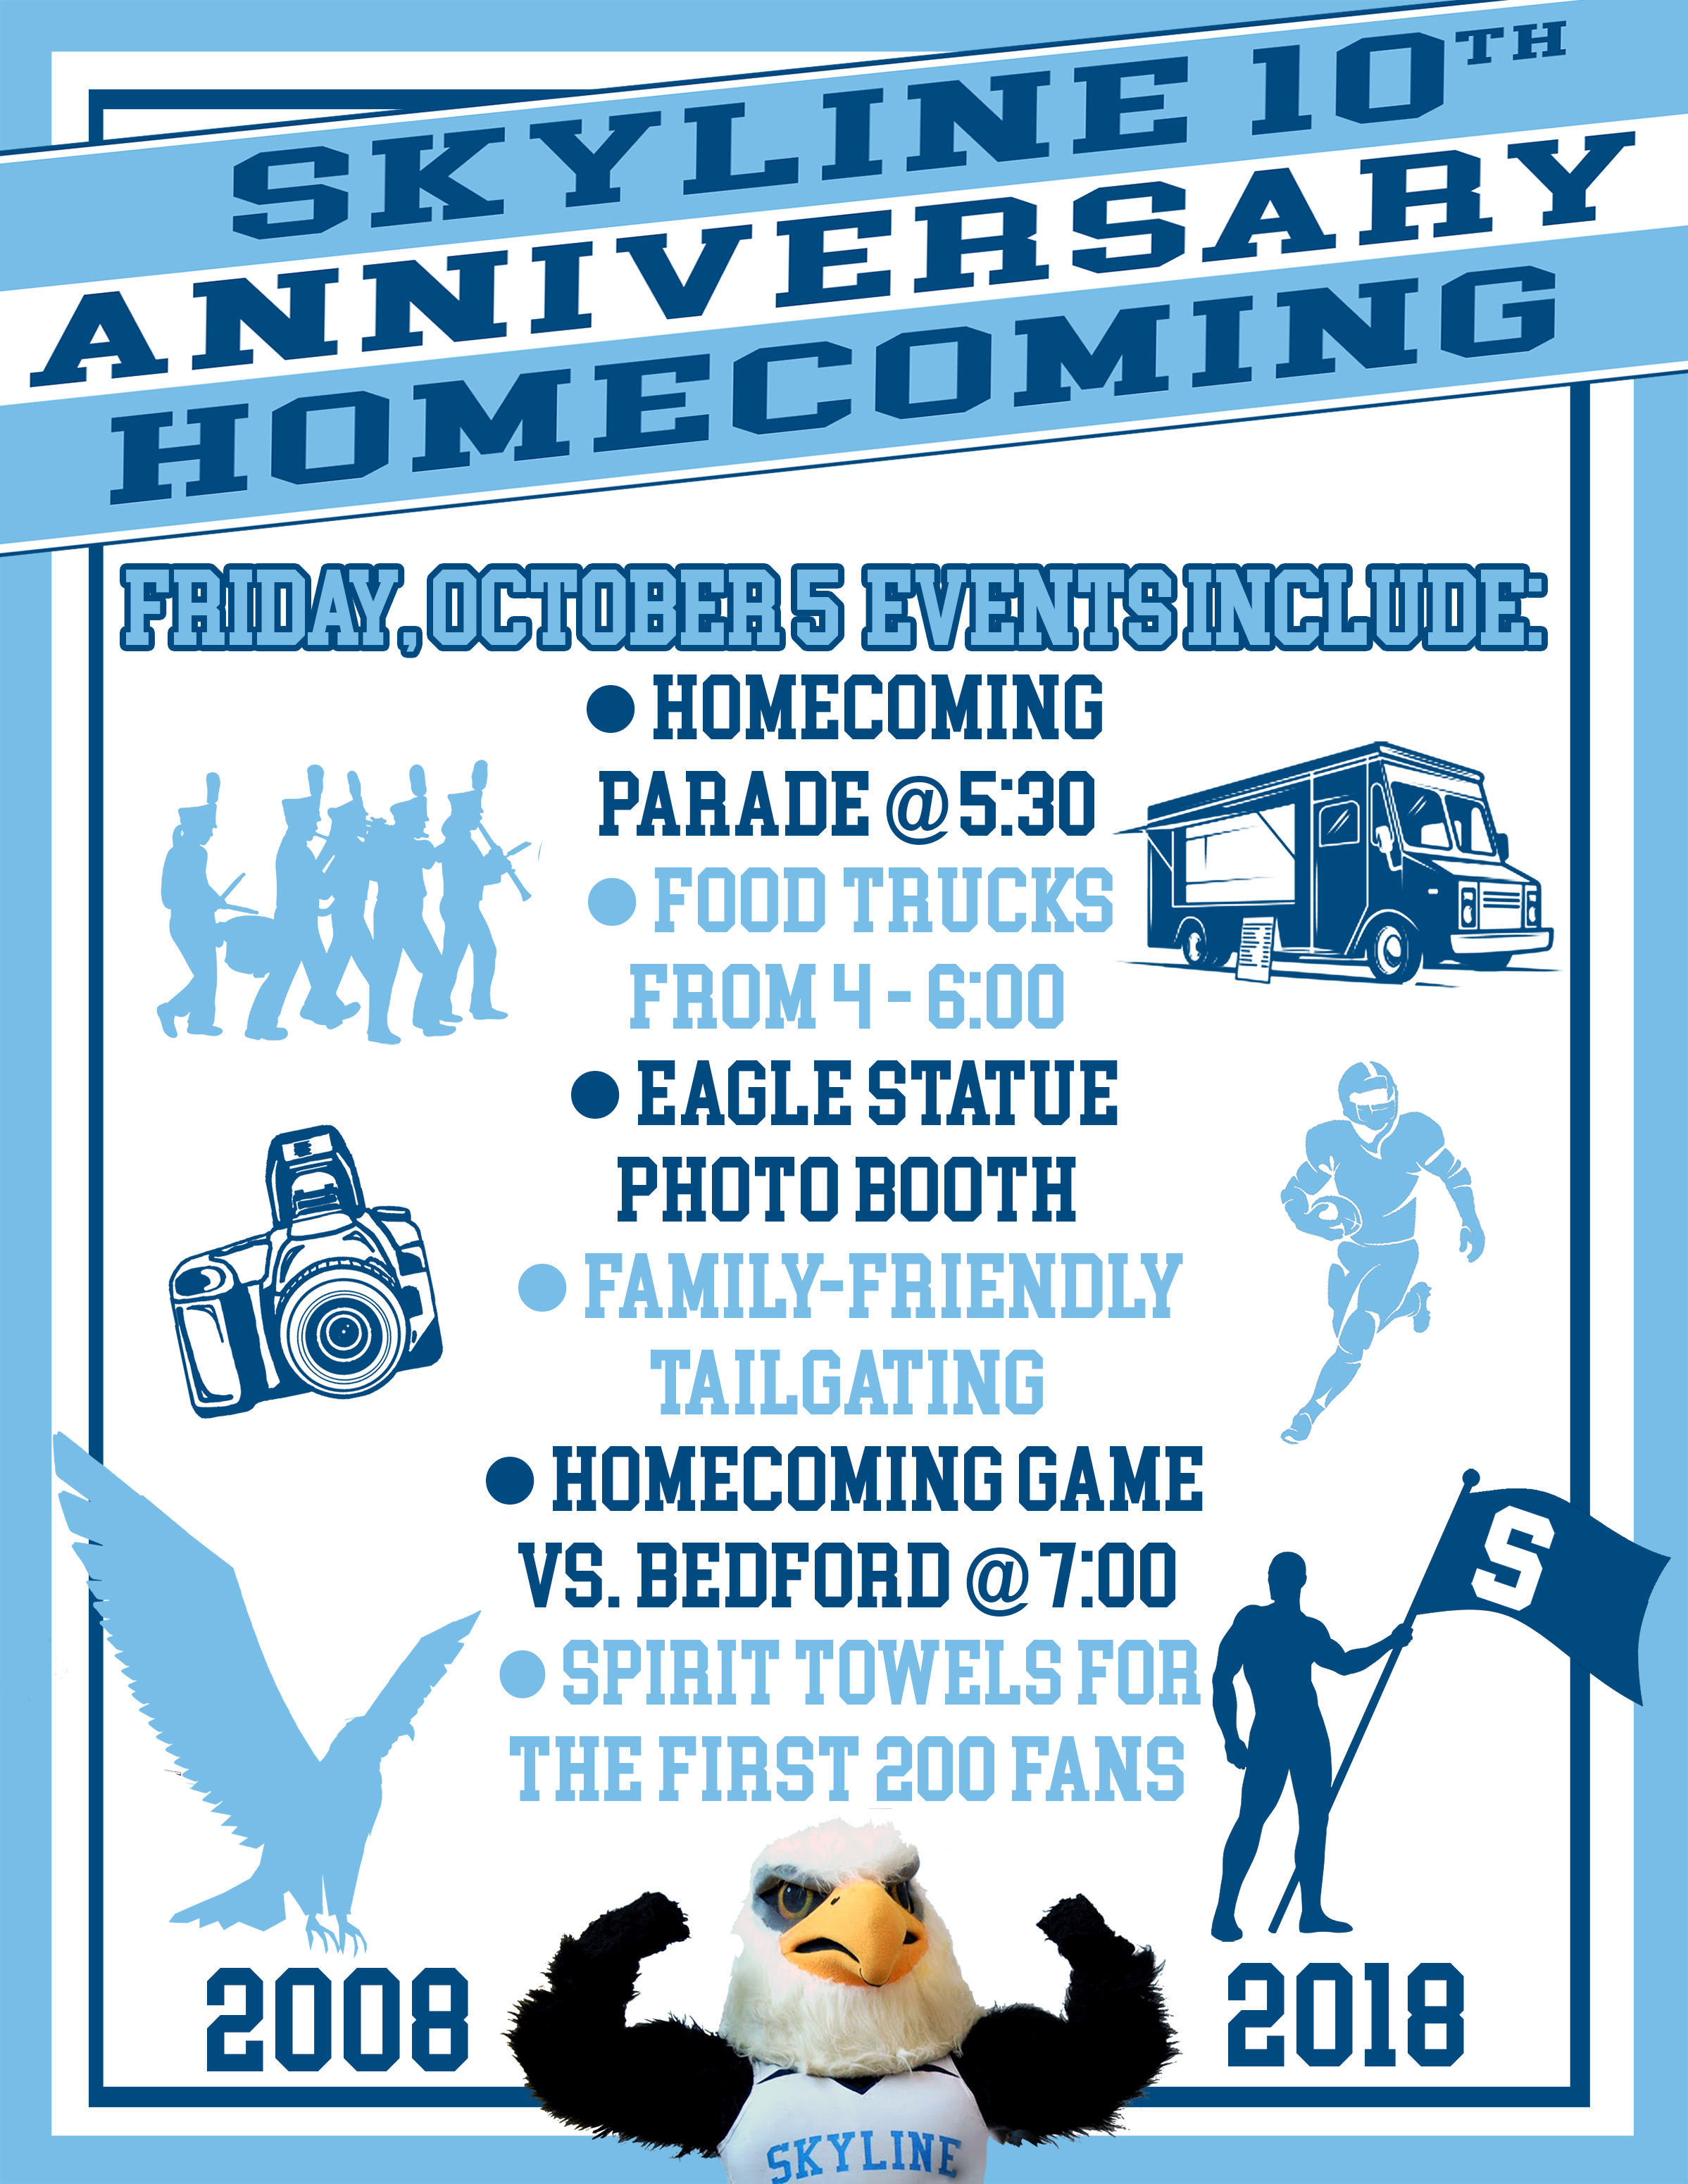 Skyline 10th Anniversary Homecoming Events